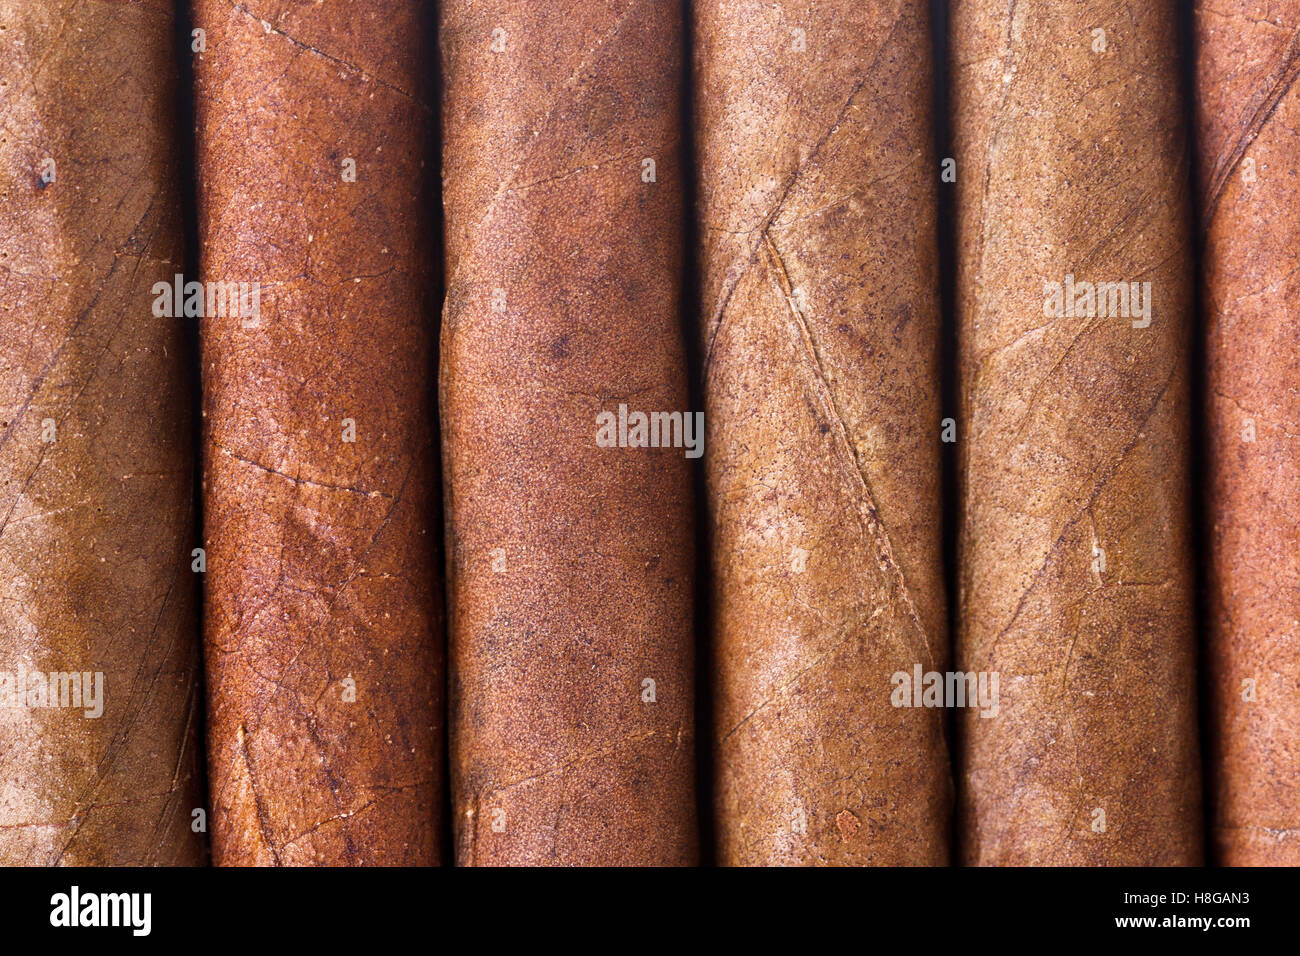 Chocolate cigars in row as background Stock Photo, Royalty Free ...